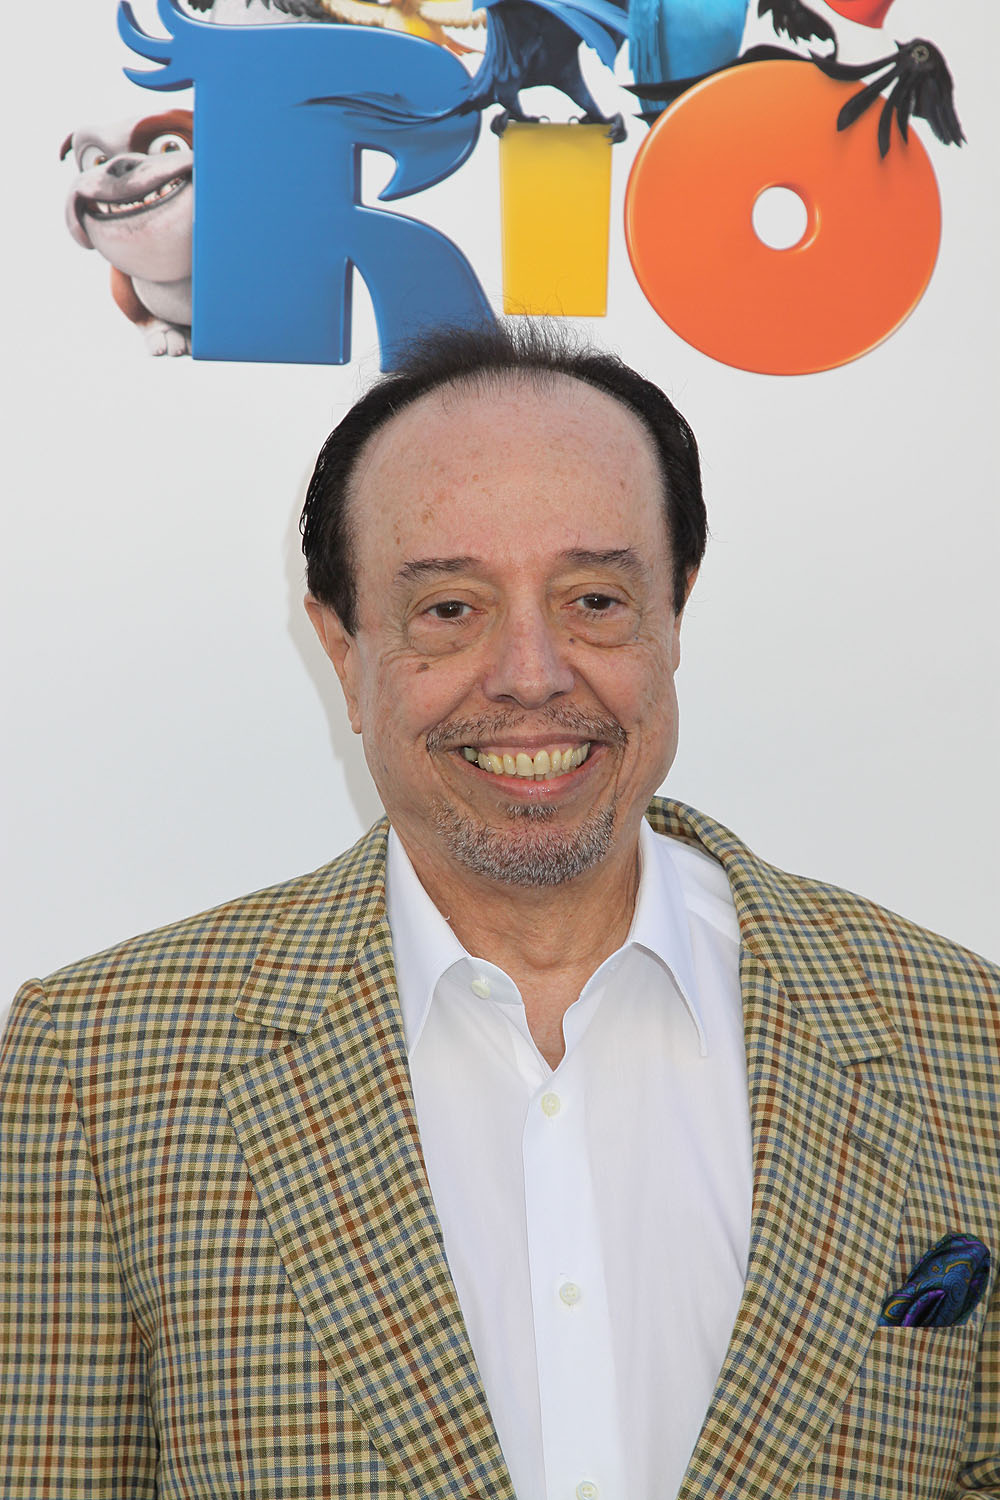 The 76-year old son of father (?) and mother(?), 183 cm tall Sérgio Mendes in 2017 photo